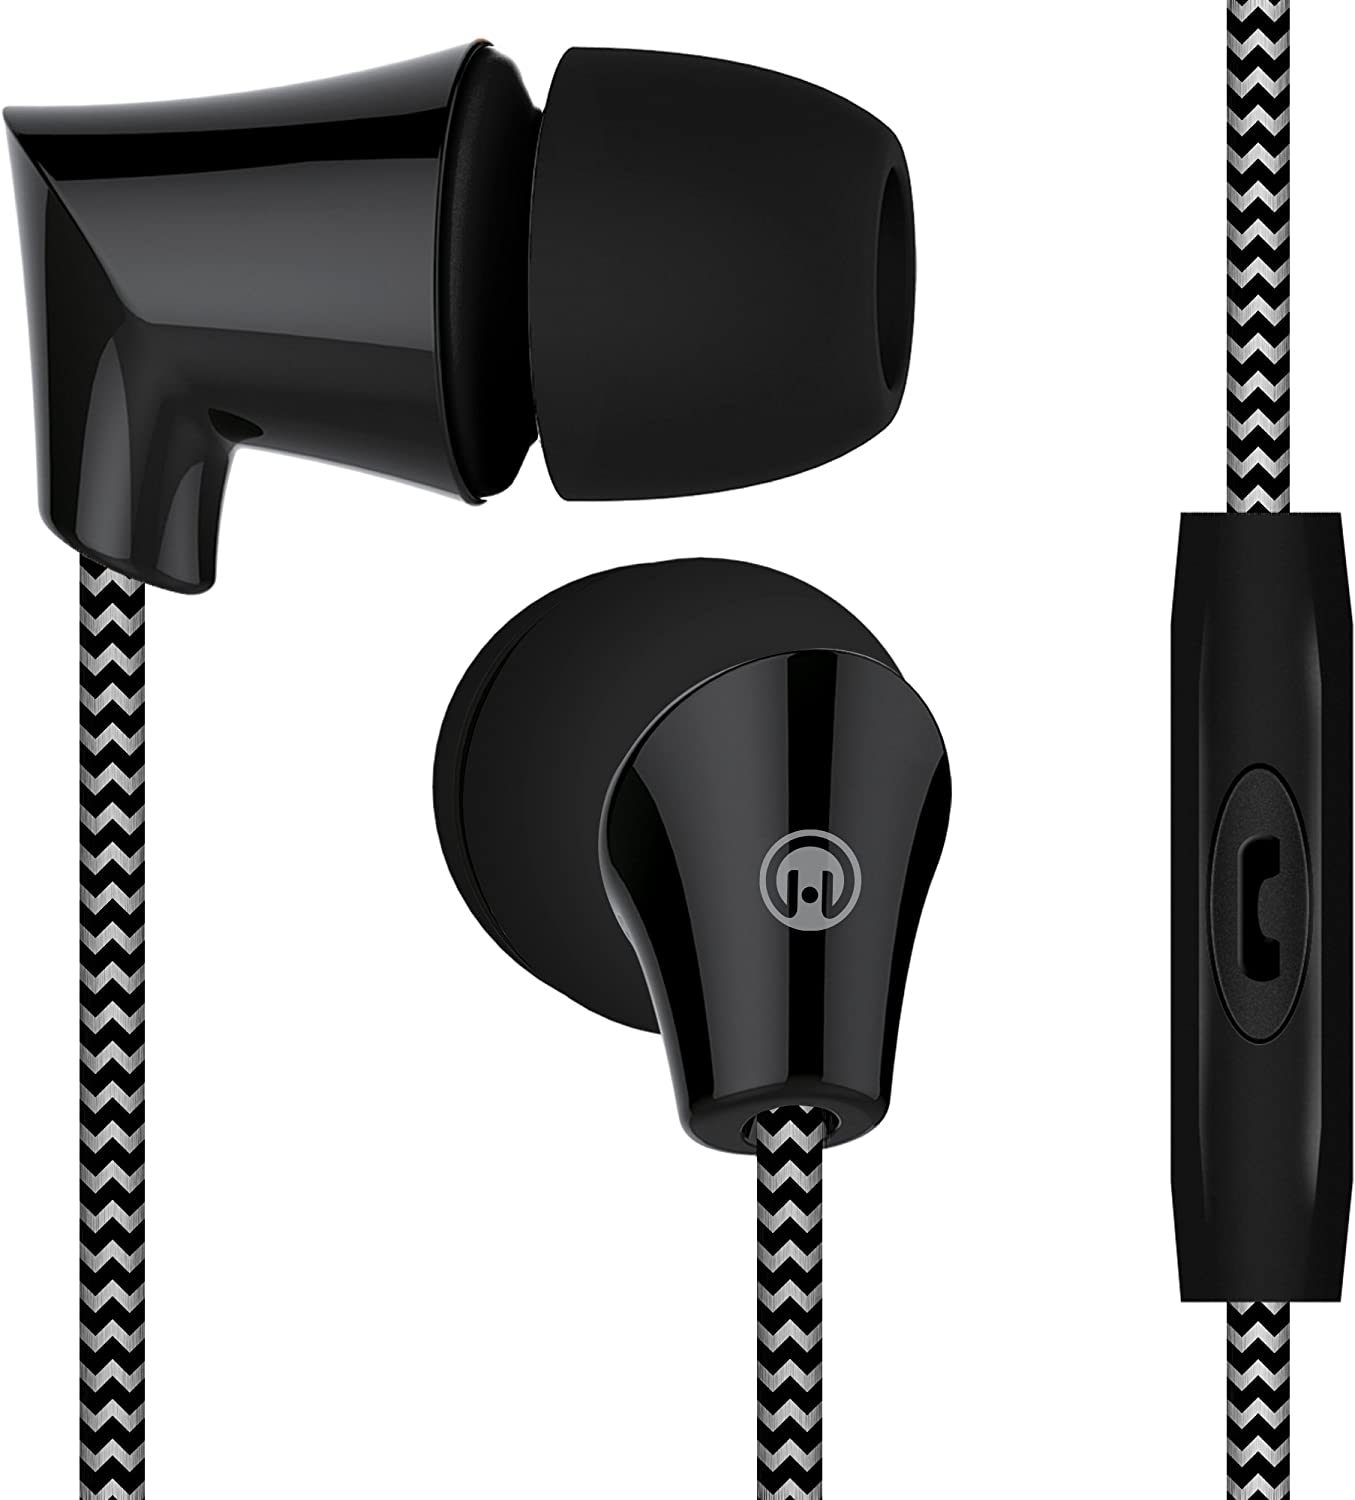 HyperGear Sound Wavez 3.5mm Earphones,in-line Mic/Hands-Free Calls & Music, Blocks Out Noise/Seal in Sound, Tangle-Free Cable & Precision Bass (Black)